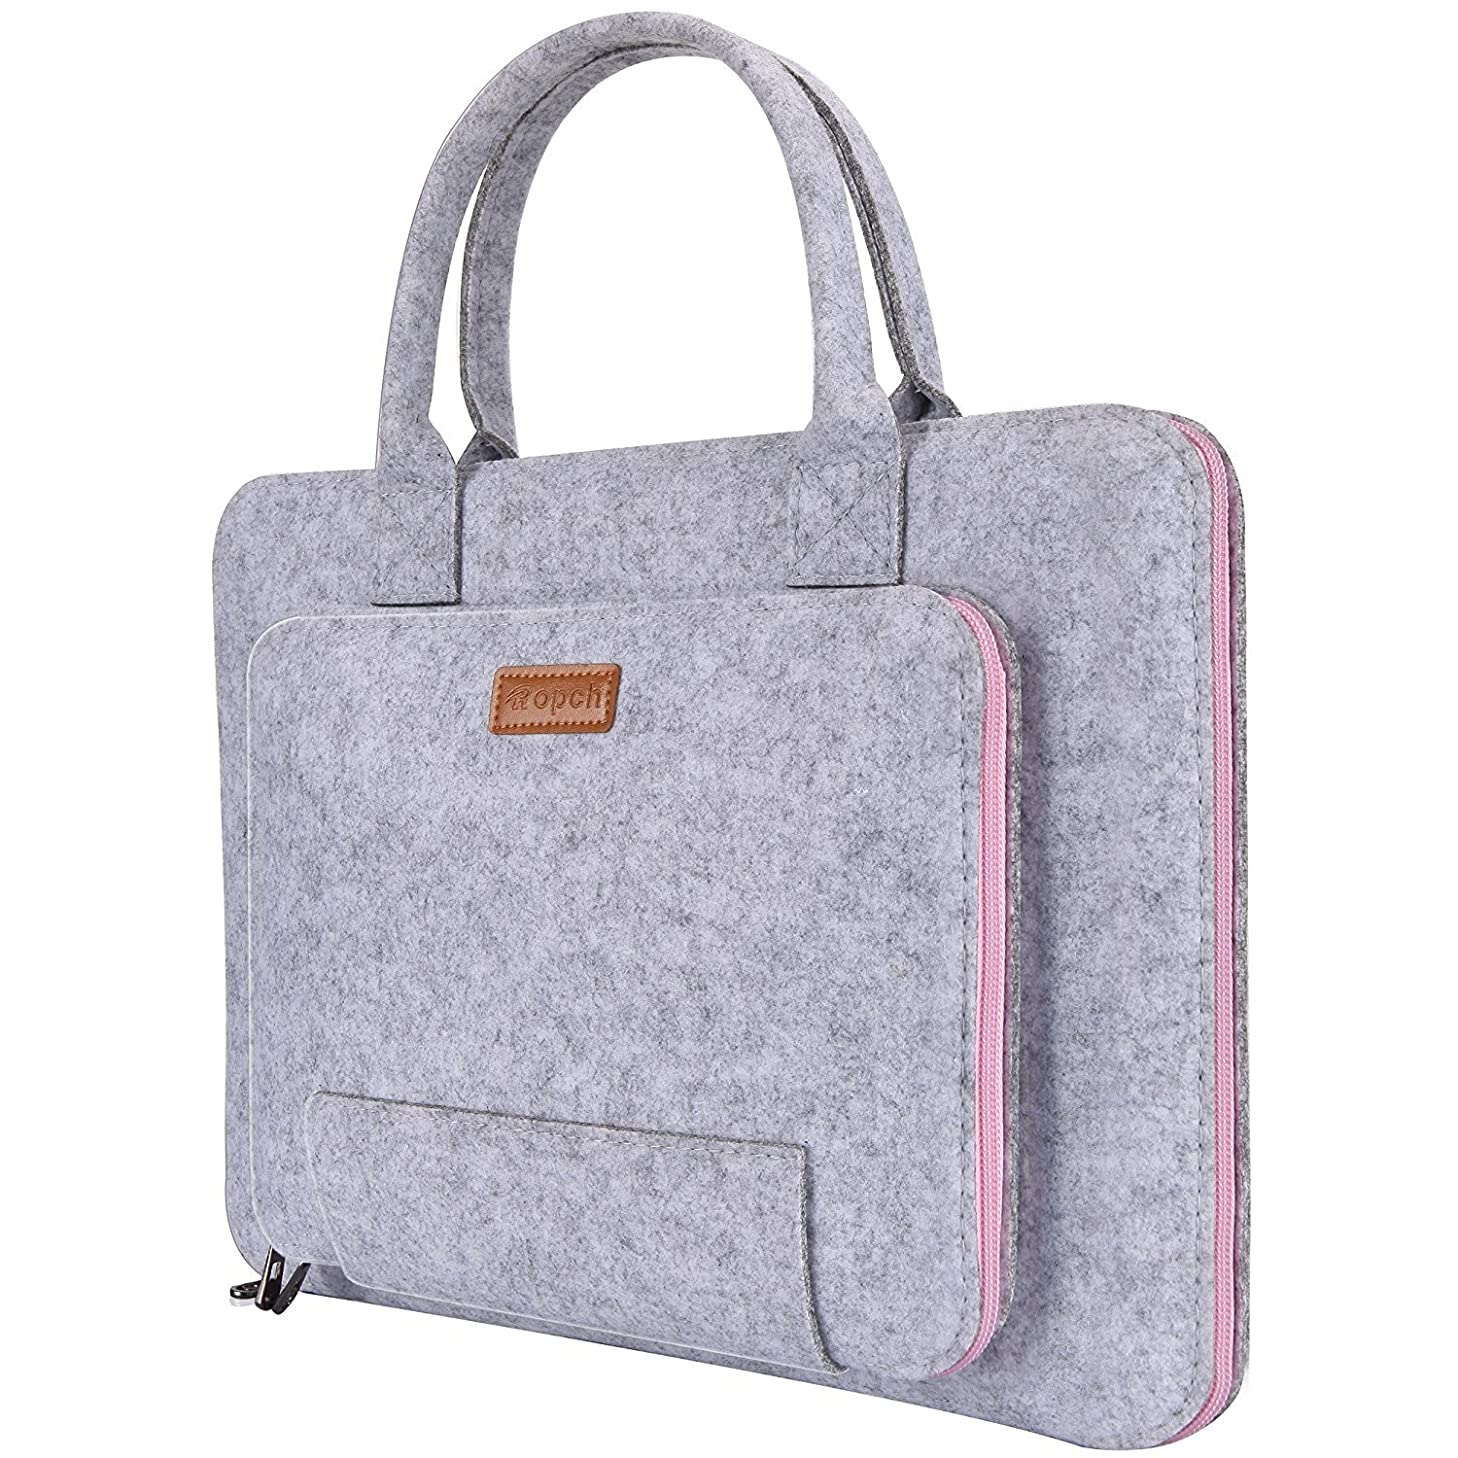 Ropch 15.6 Inch Laptop Sleeve Felt Notebook Computer Case Bag Pouch with Handle Compatible with 15 15.6